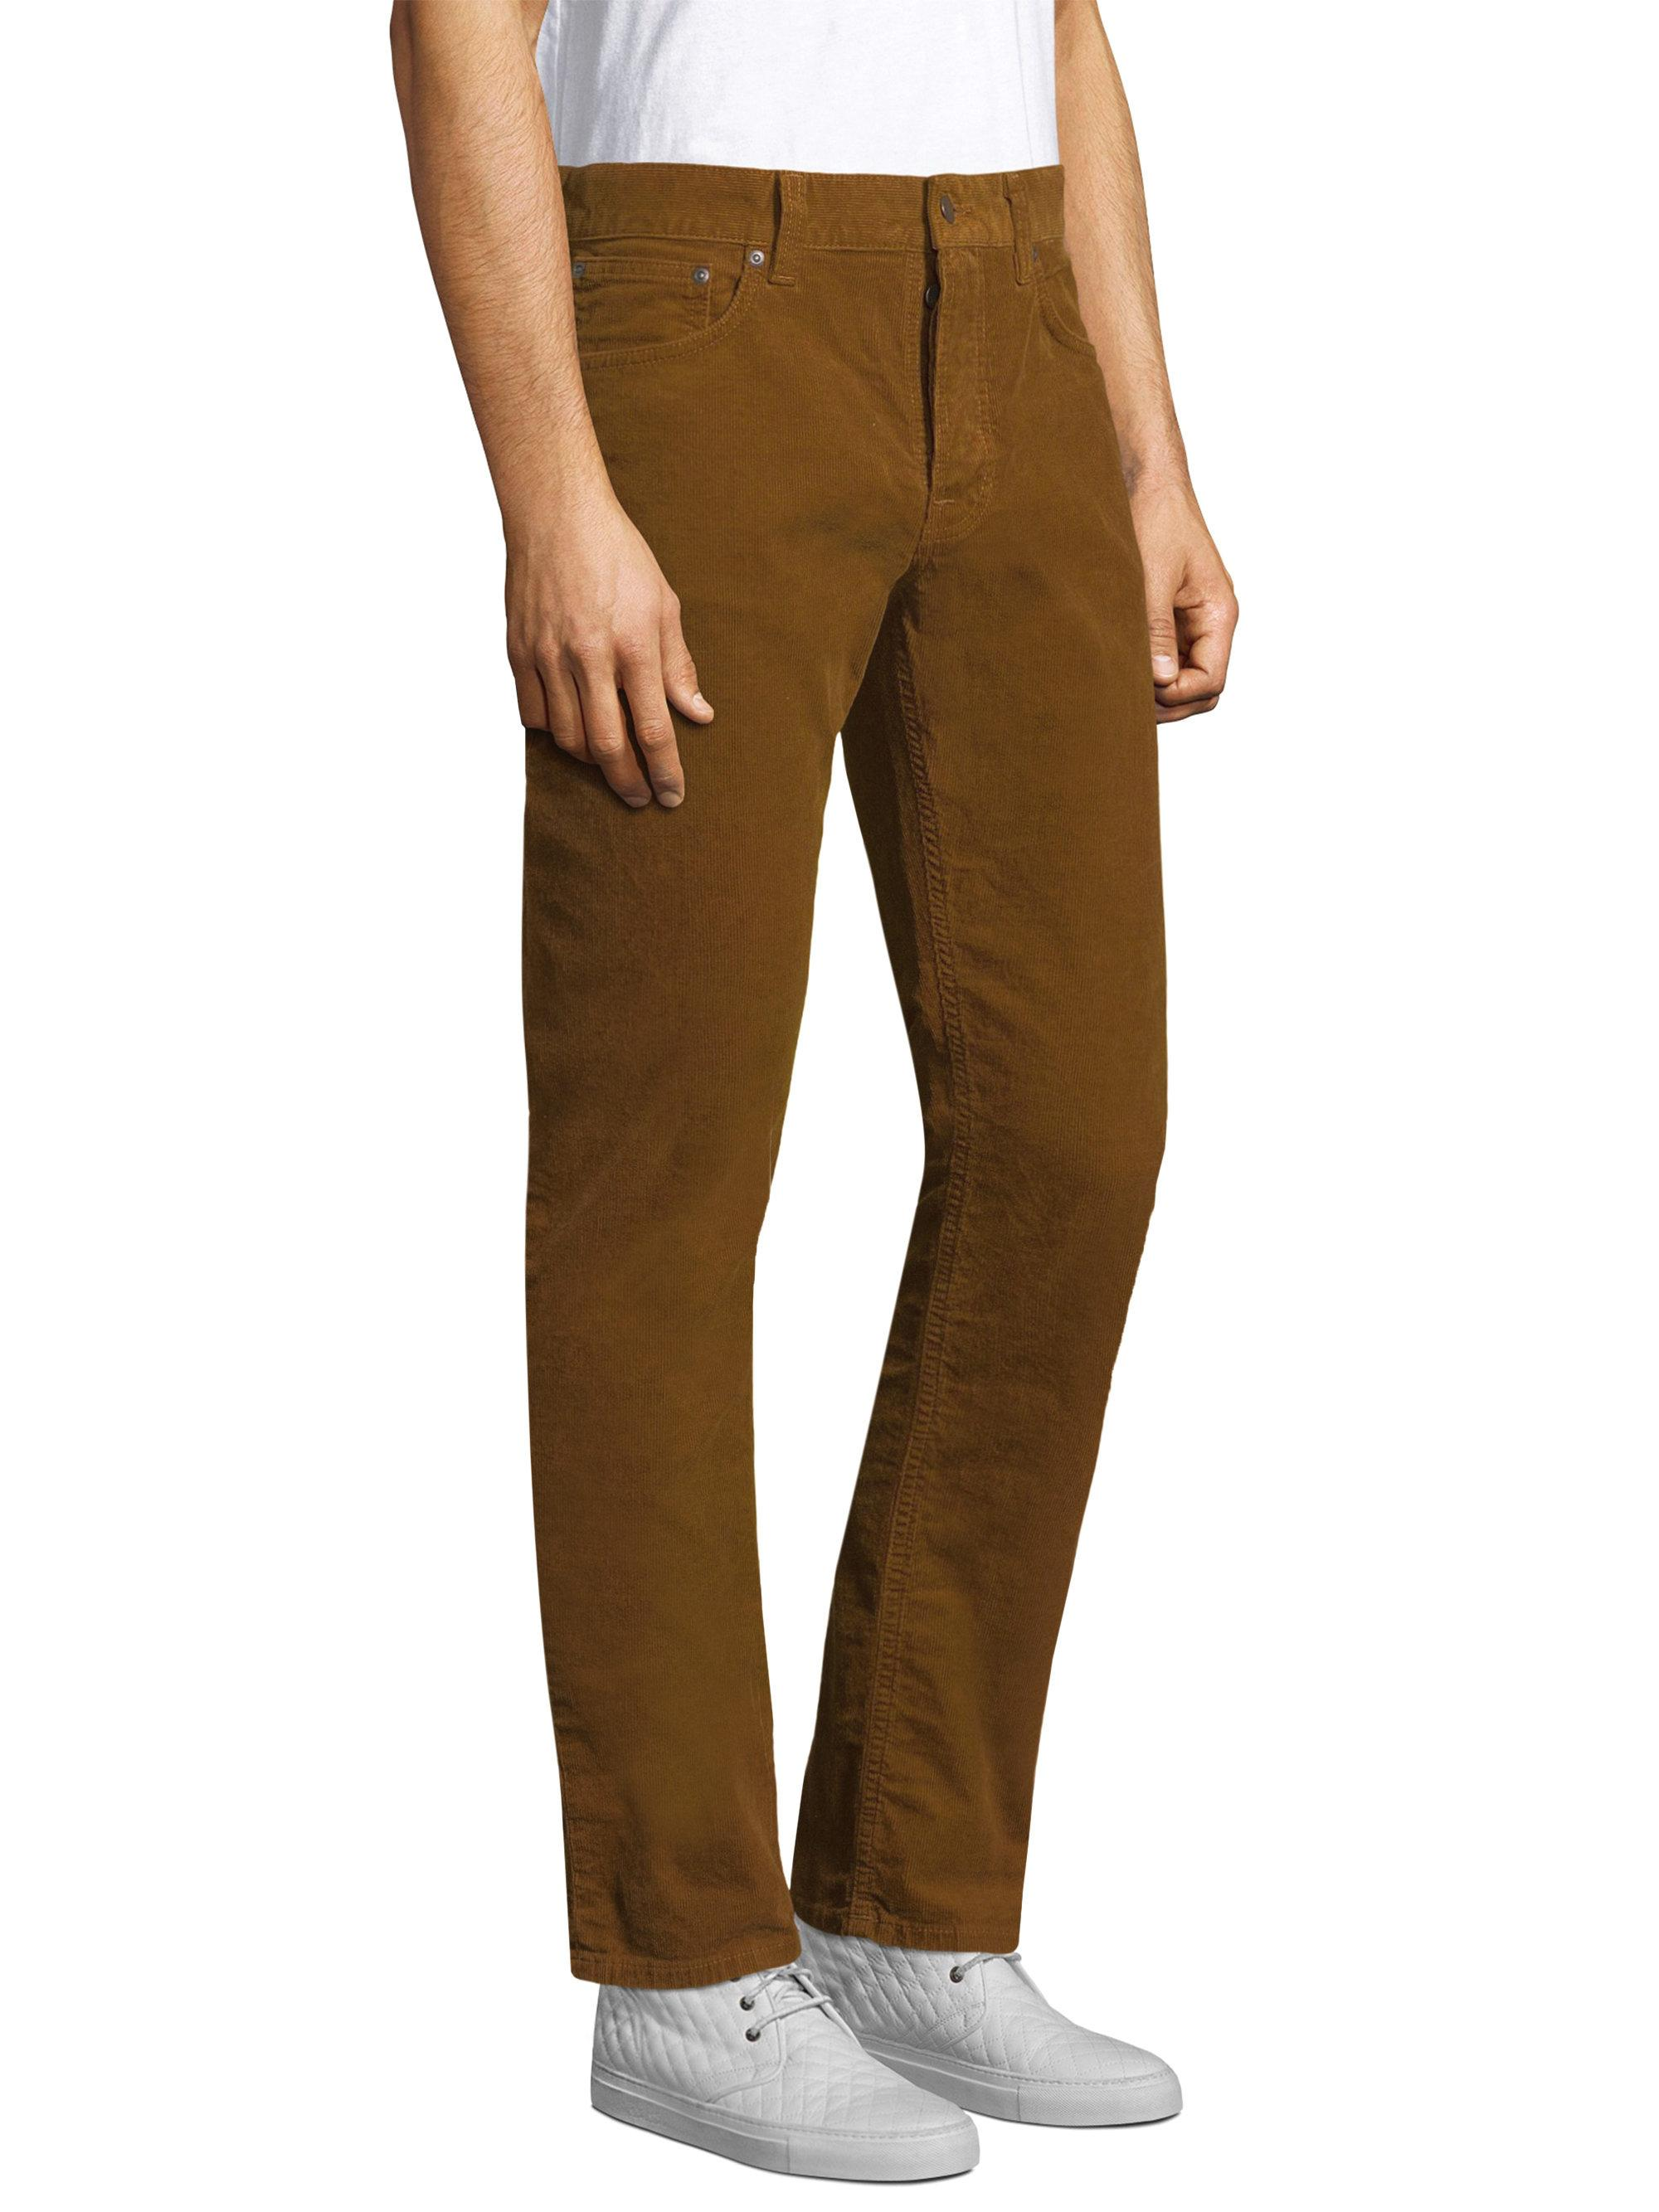 0d99778a Nudie Jeans Lion Skinny Corduroy Trousers in Brown for Men - Lyst